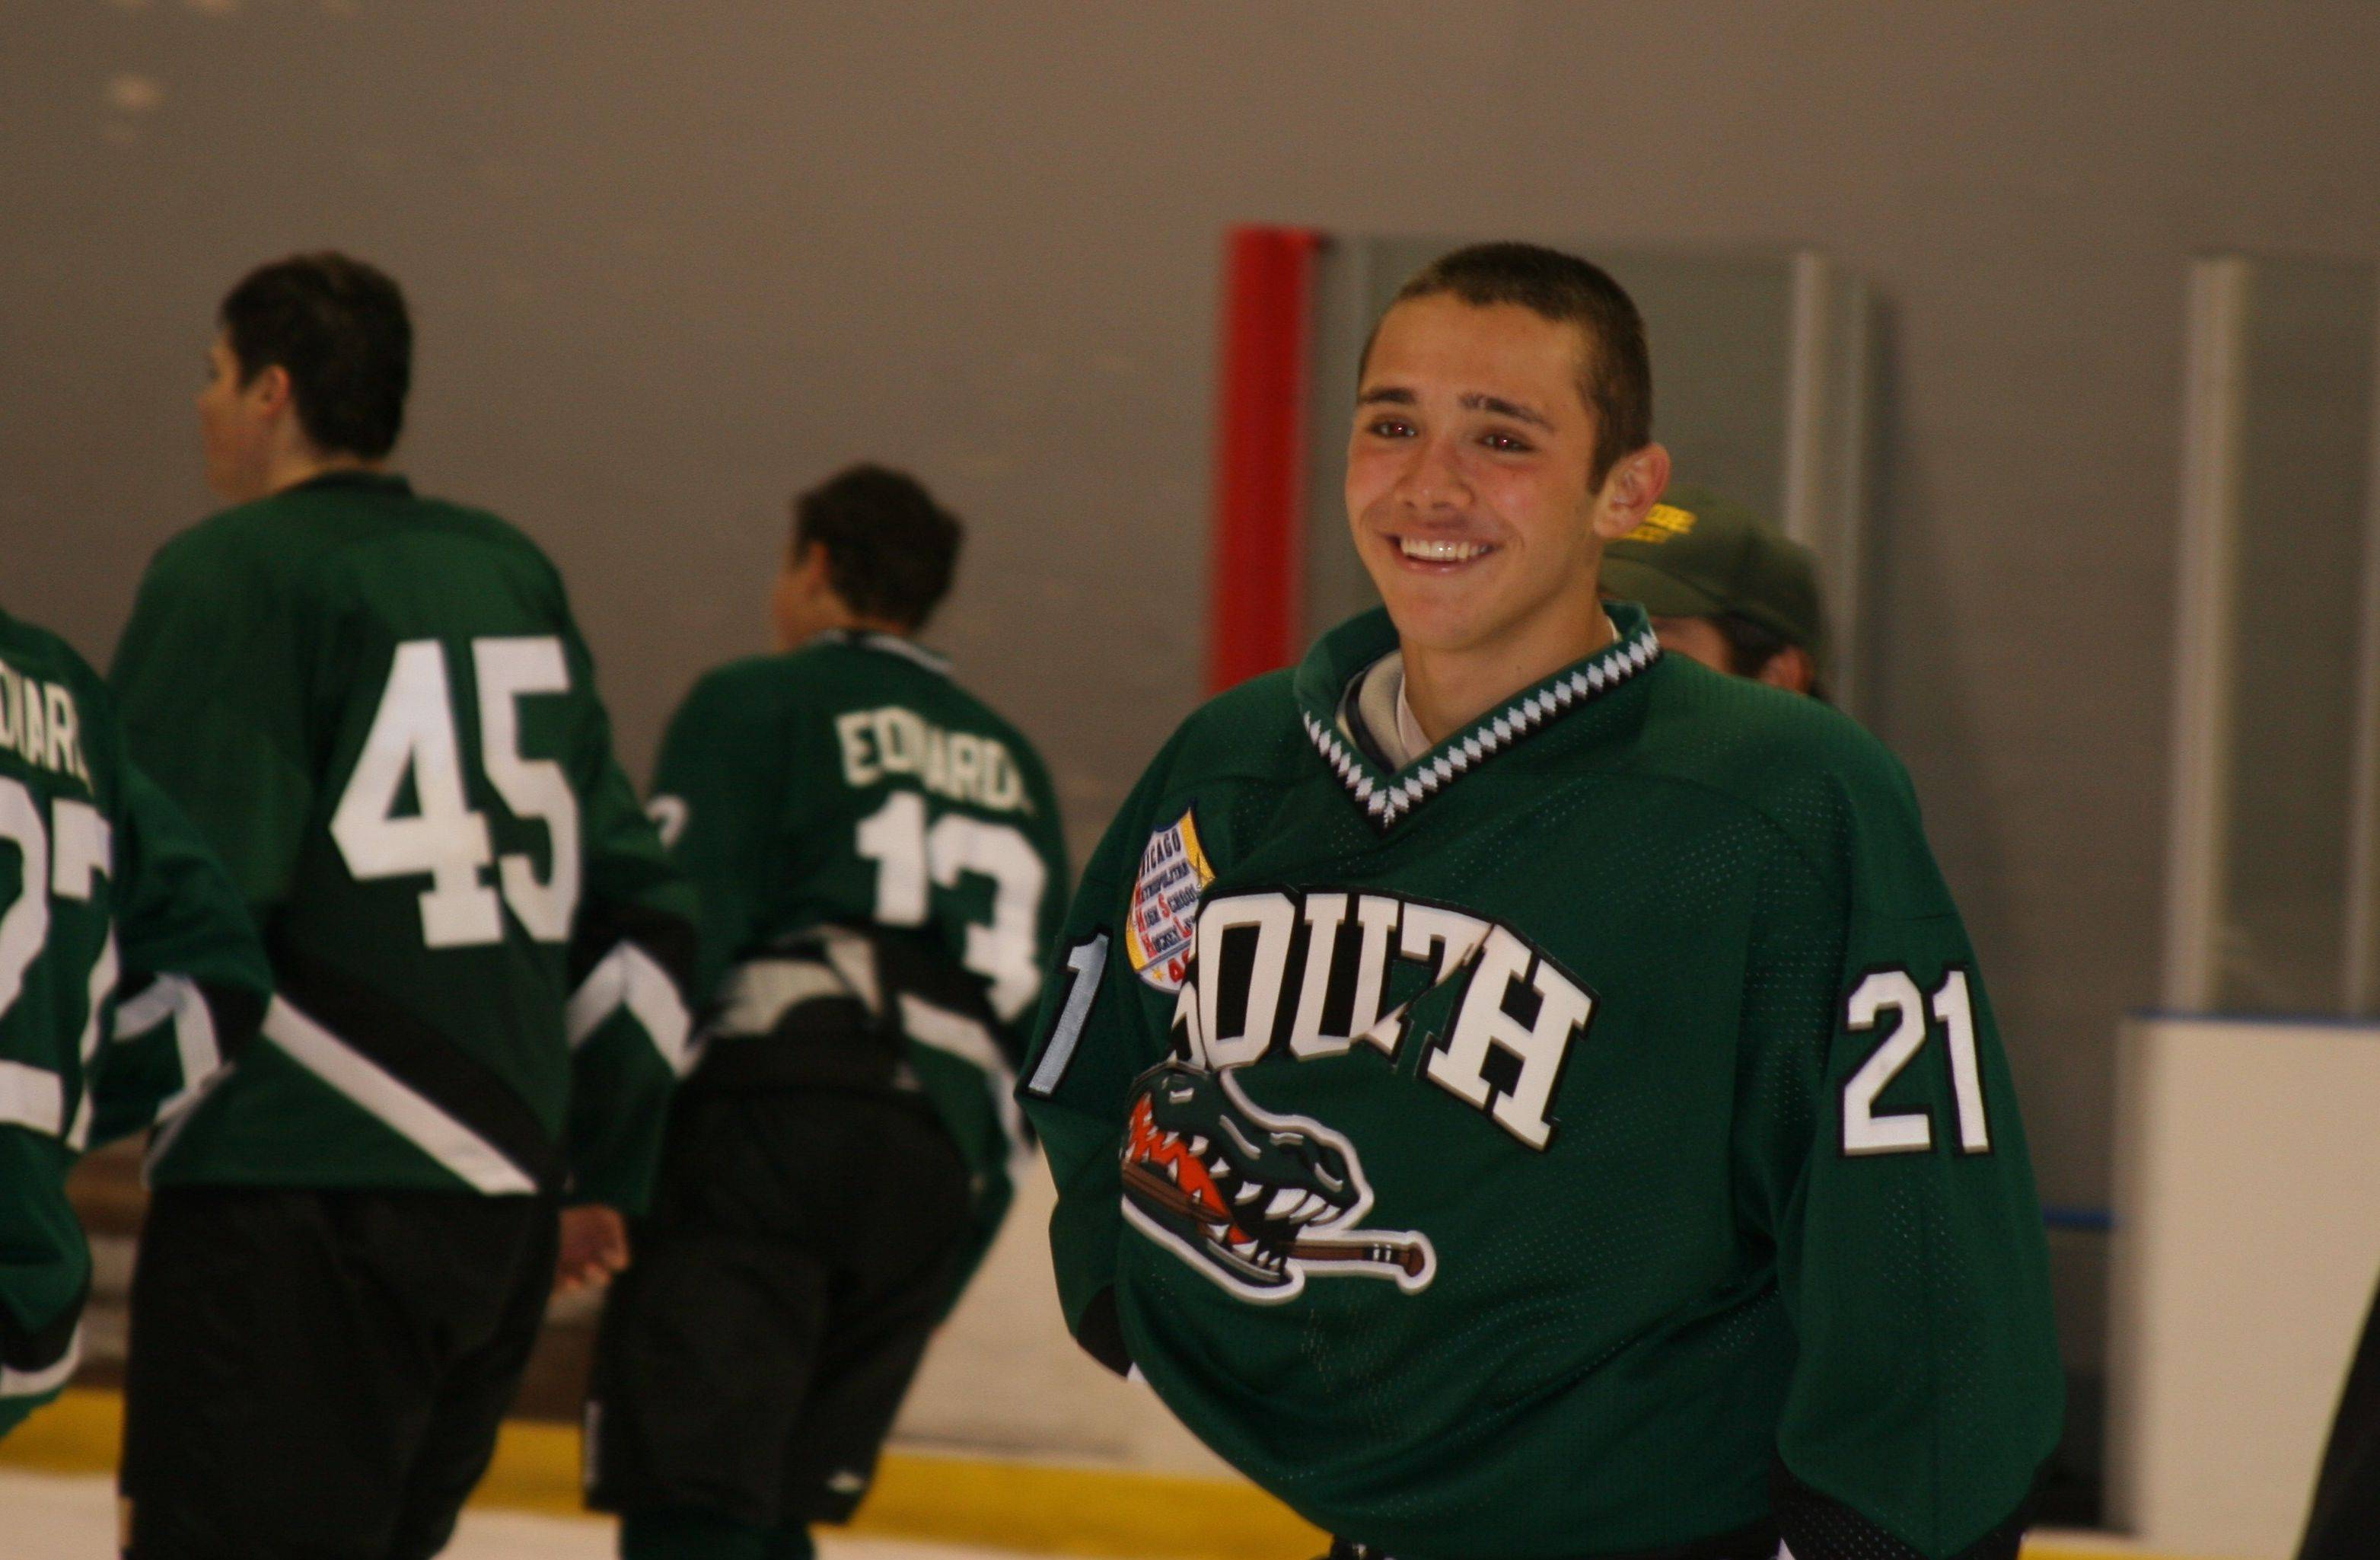 Crystal Lake South forward Jake Bigos is enjoying his senior season on the ice with the Gators in the North Central Division of the Illinois High School Hockey League.